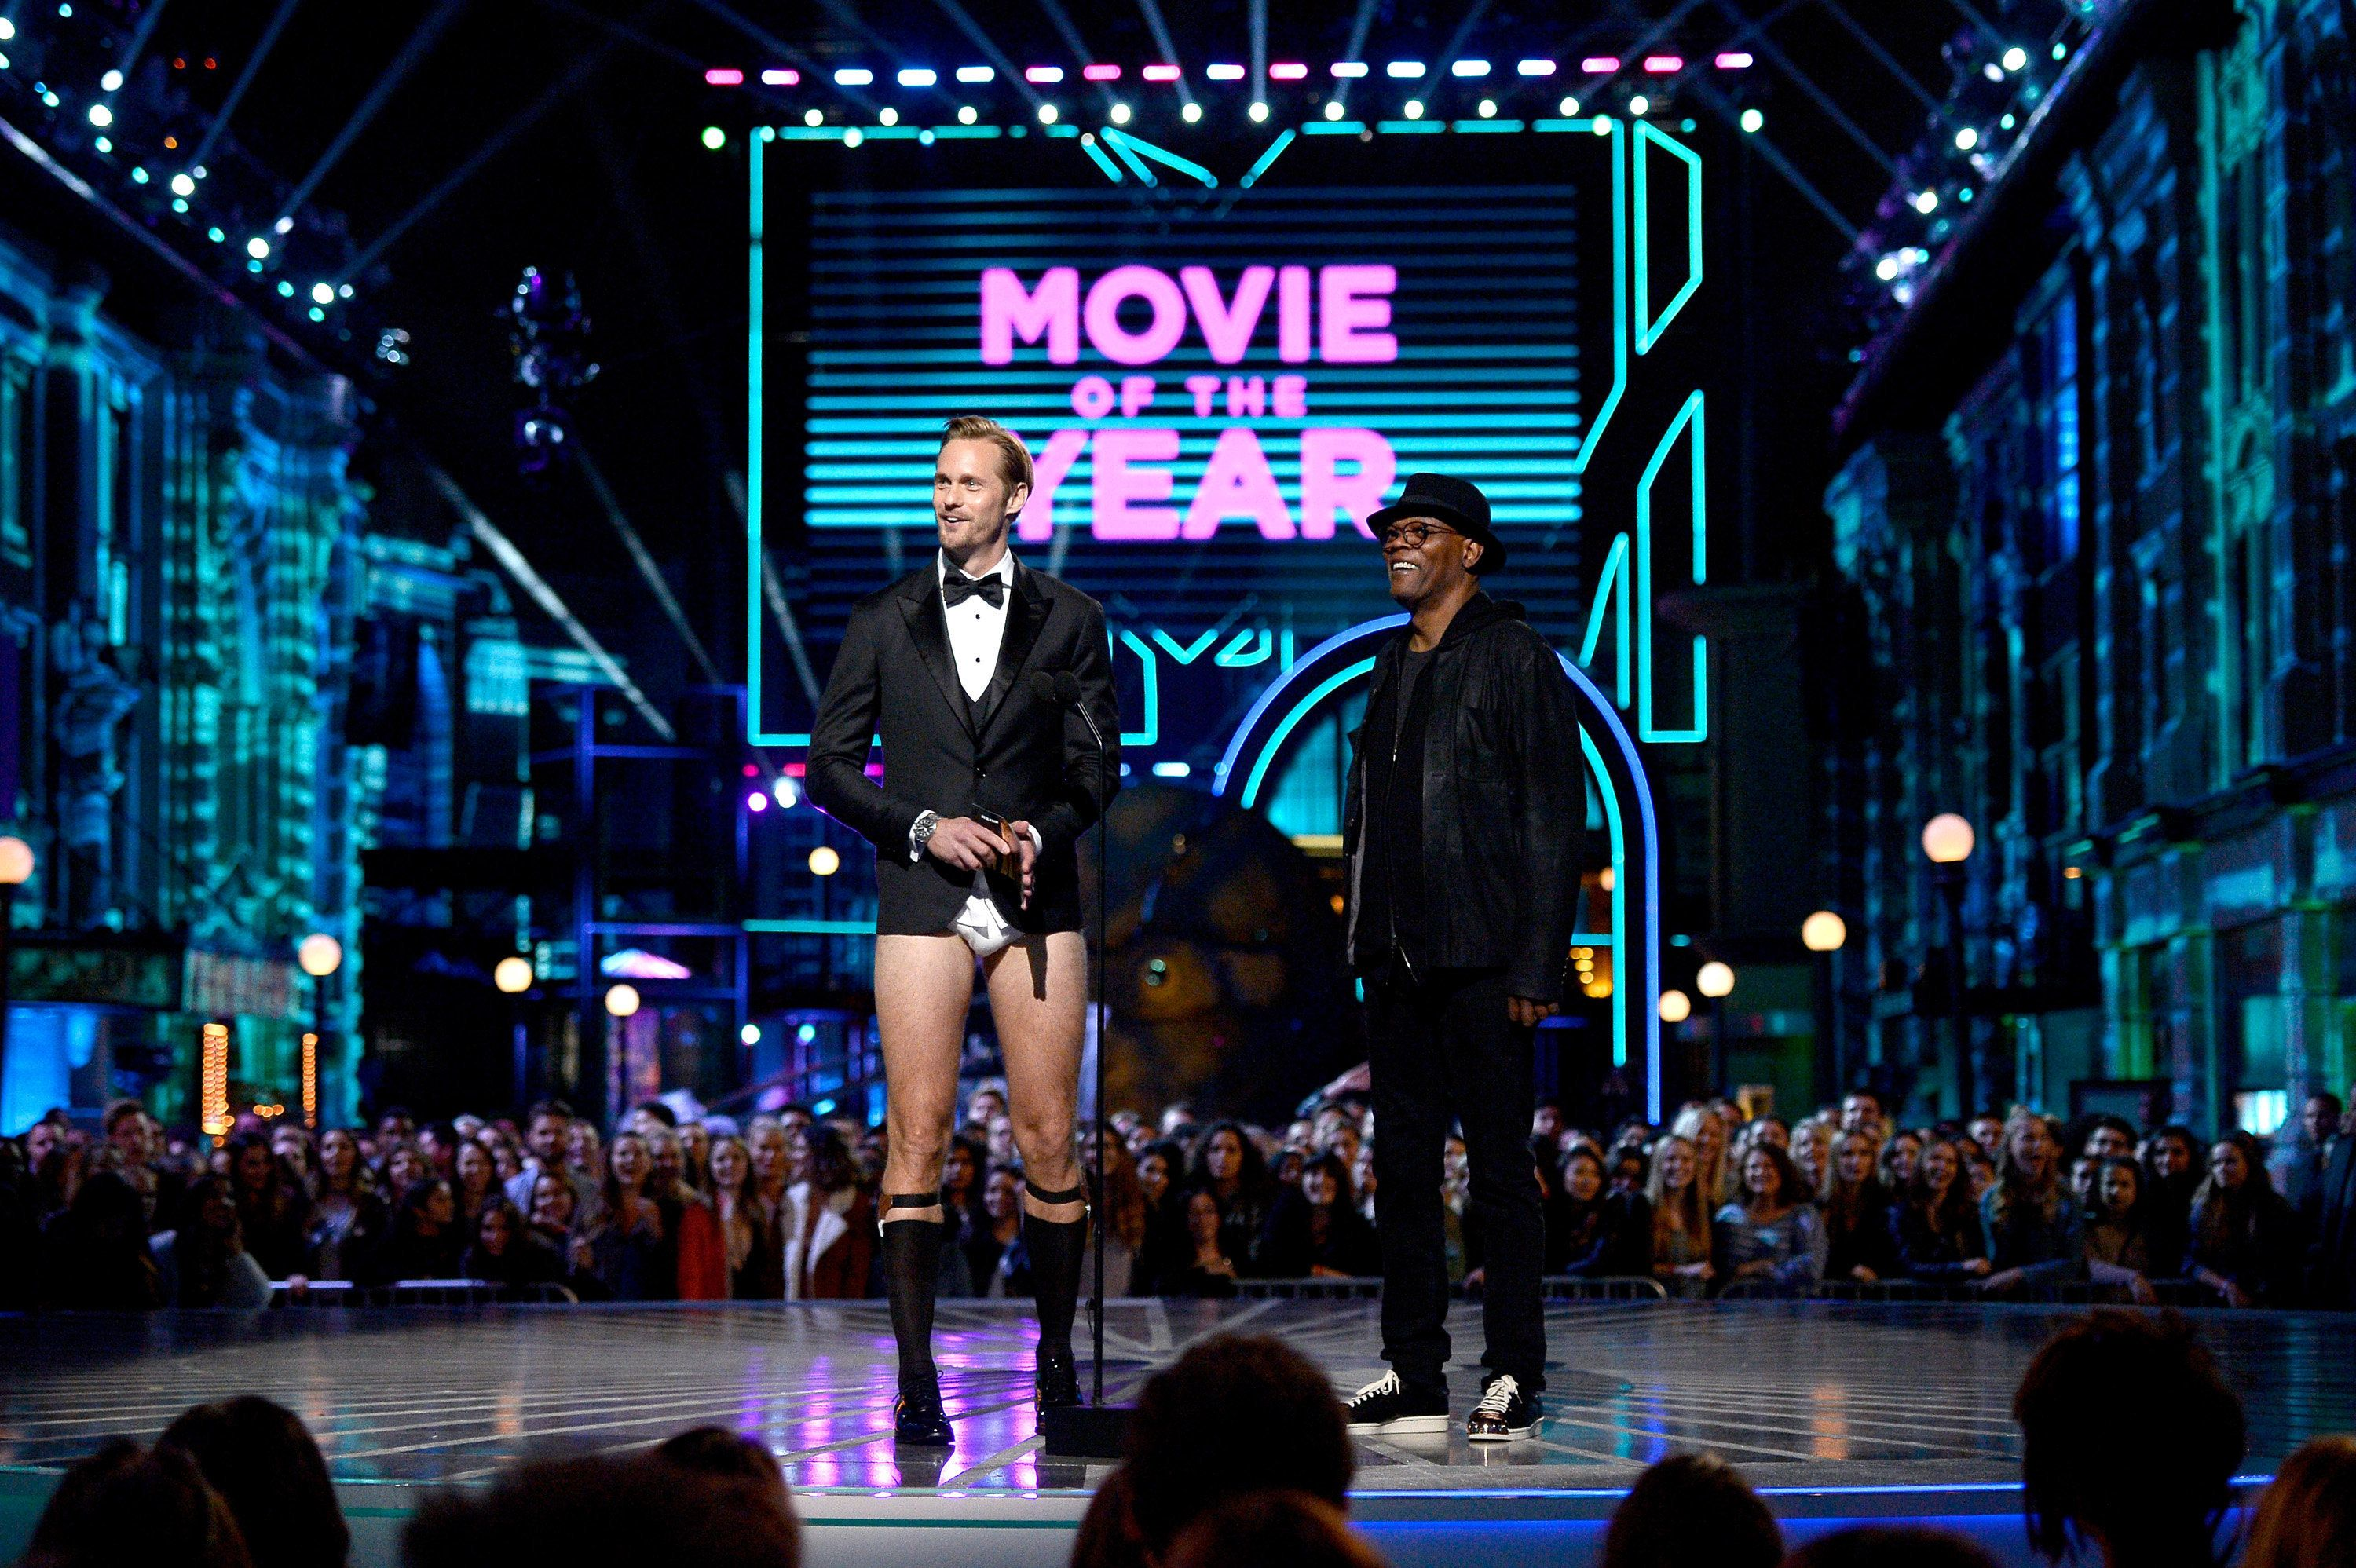 BURBANK, CALIFORNIA - APRIL 09:  Actors Alexander Skarsgard (L) and Samuel L. Jackson speak onstage during the 2016 MTV Movie Awards at Warner Bros. Studios on April 9, 2016 in Burbank, California.  MTV Movie Awards airs April 10, 2016 at 8pm ET/PT.  (Photo by Kevork Djansezian/Getty Images)